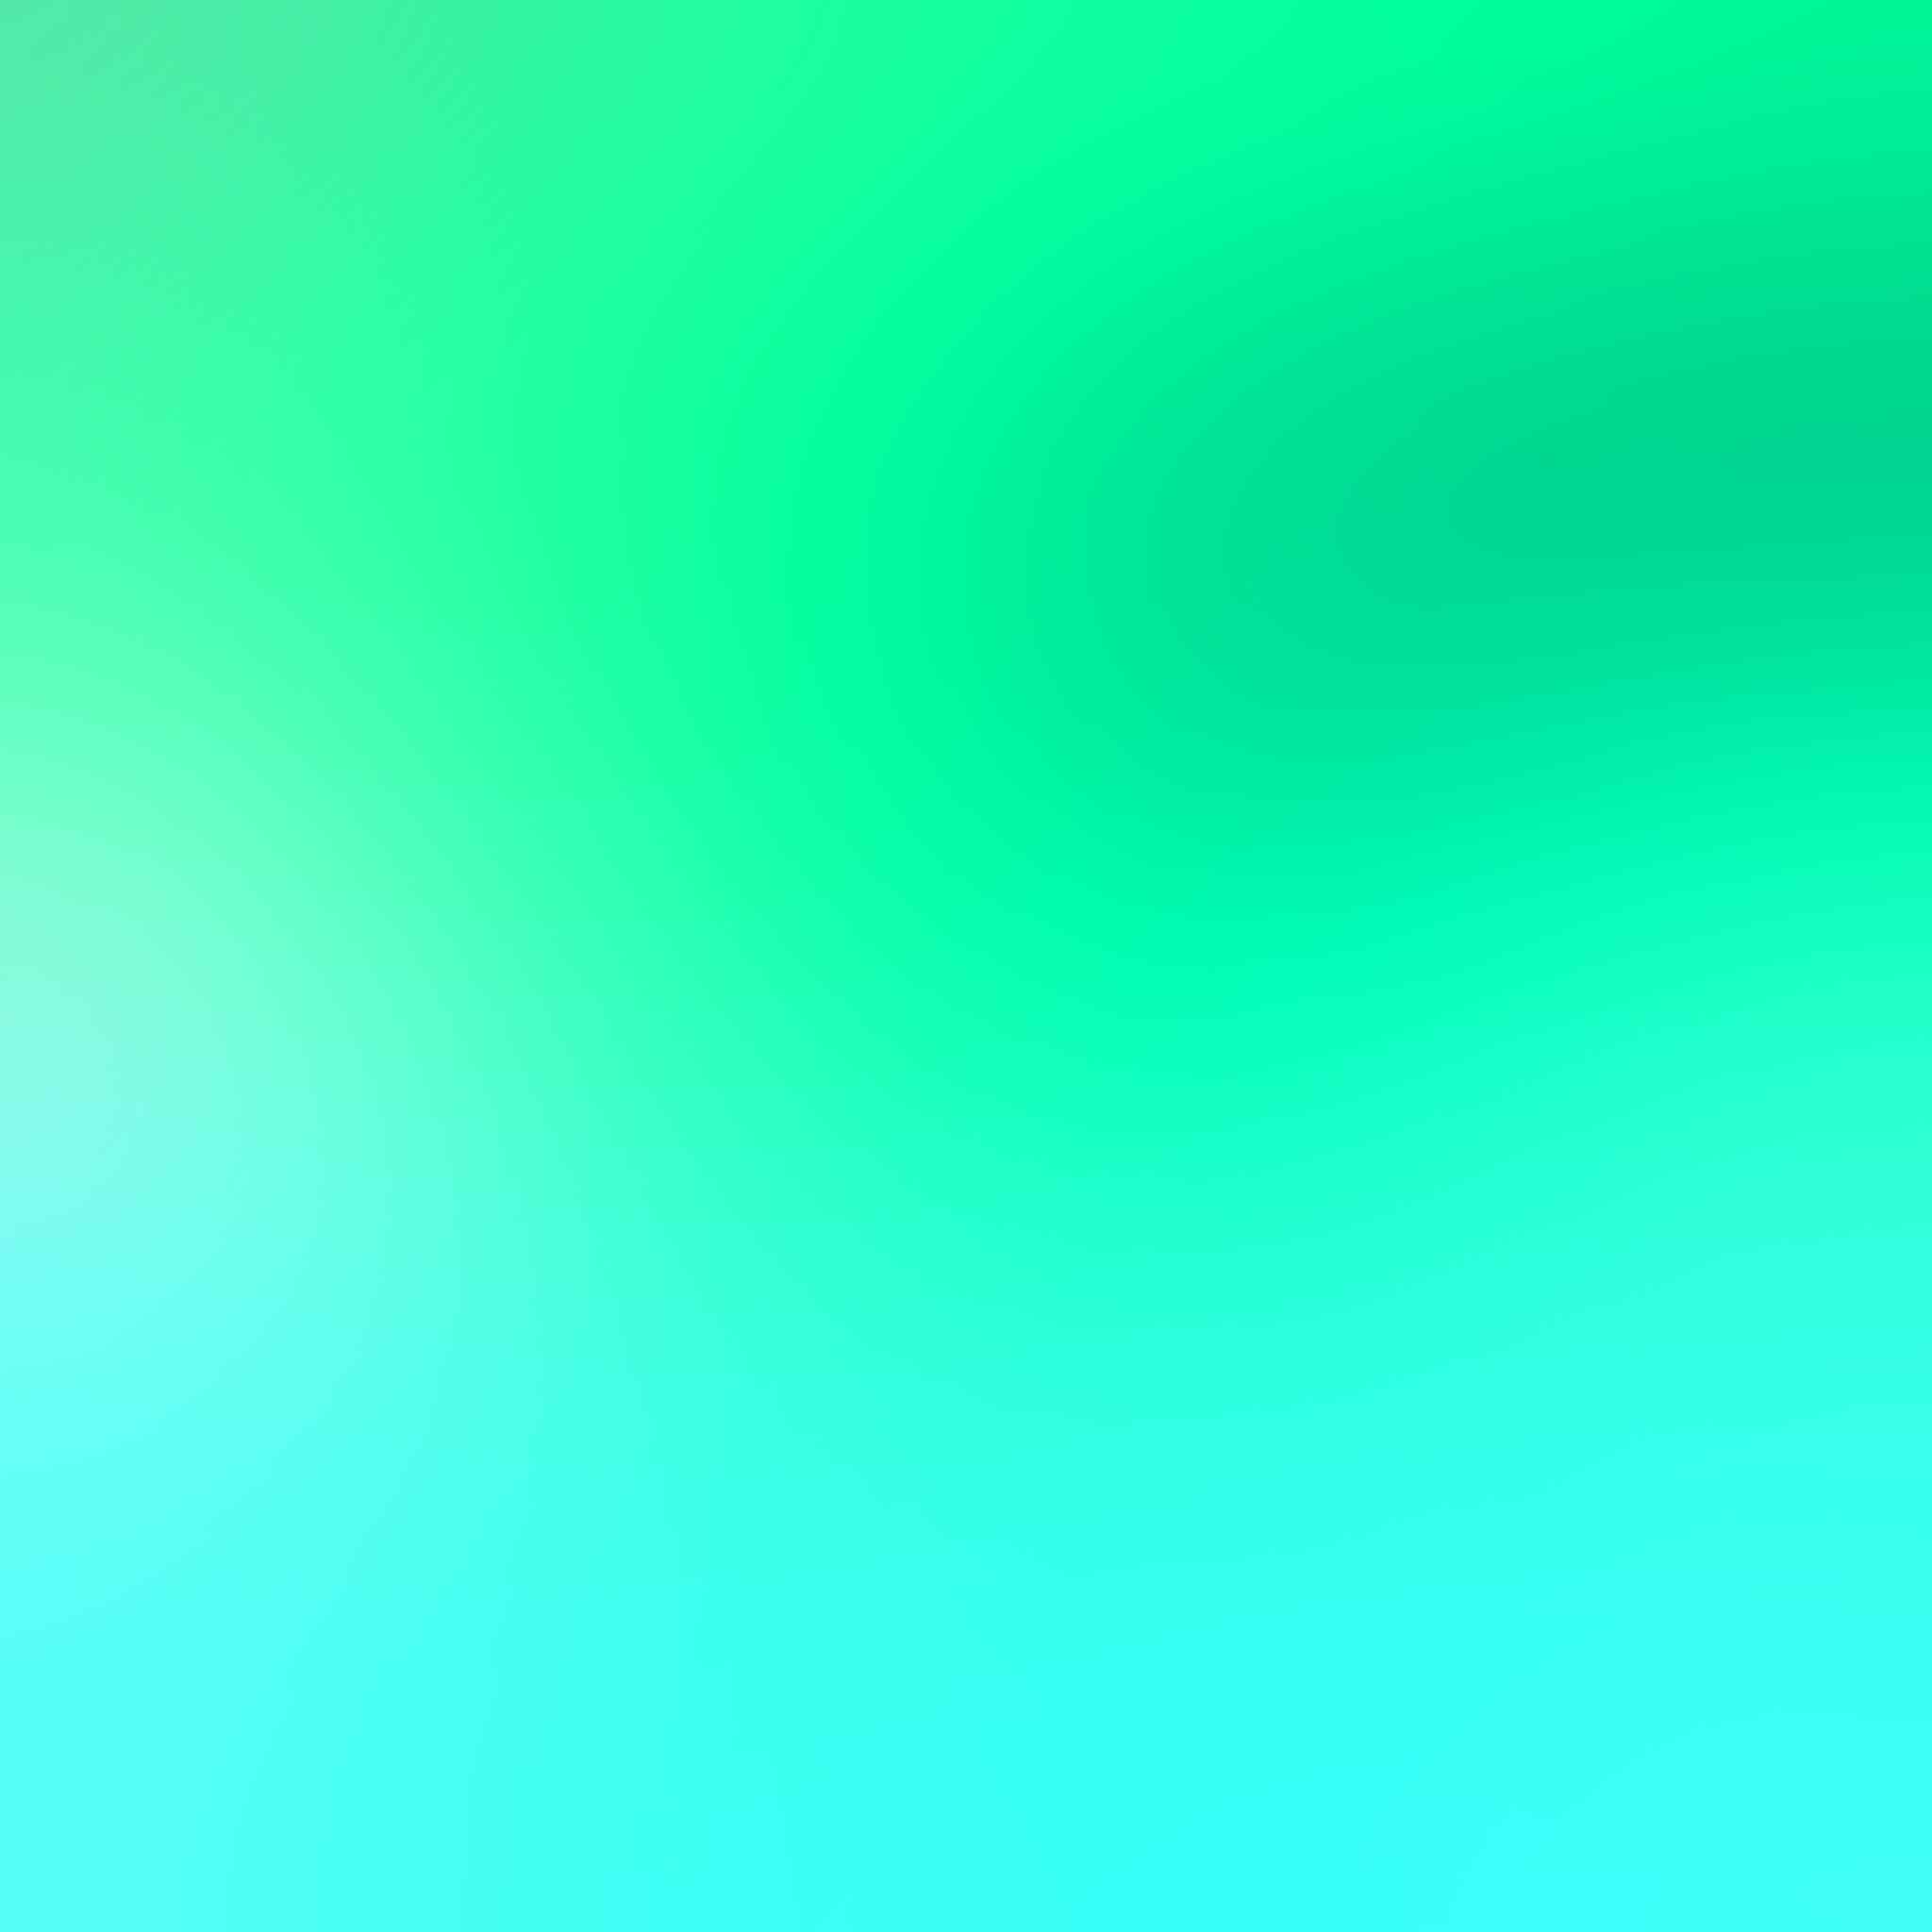 Plain Solid lime Green Background